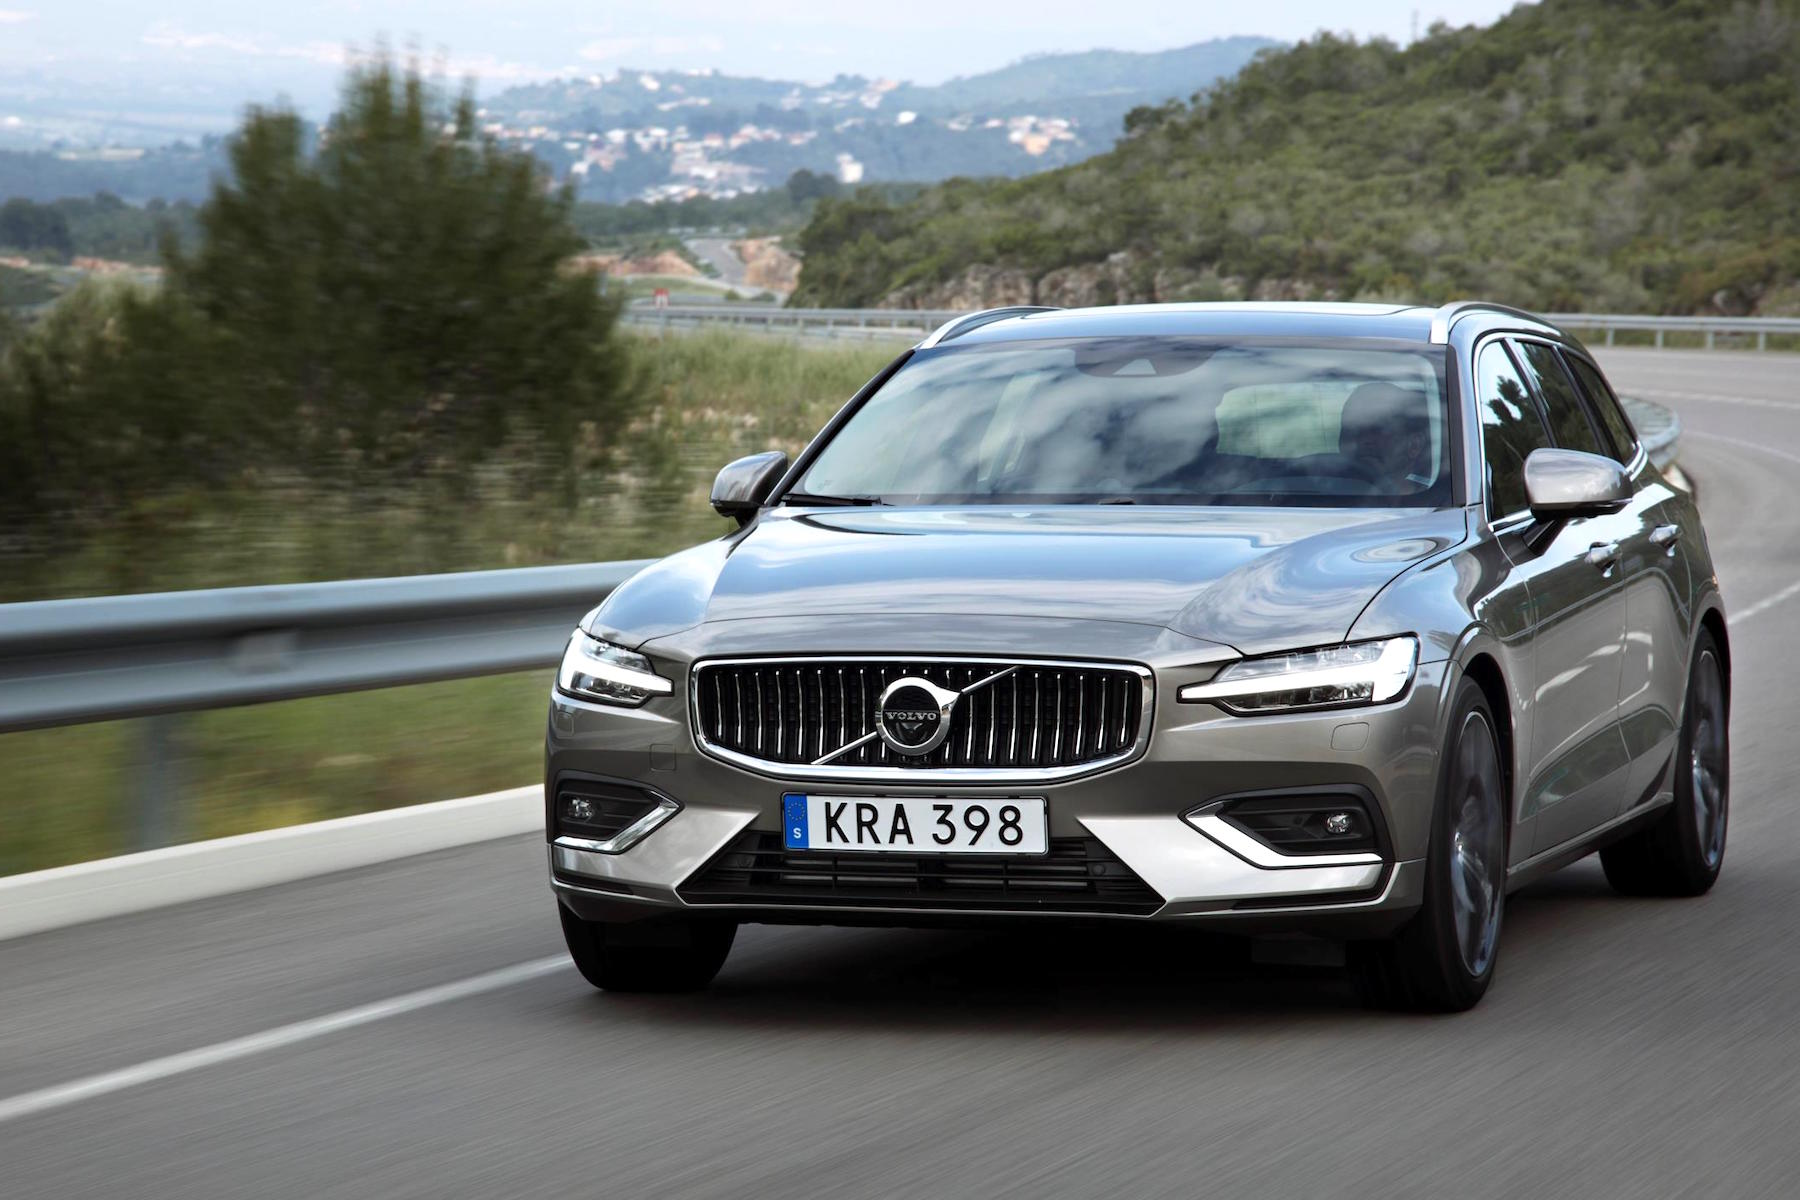 2018 Volvo model range meets WLTP